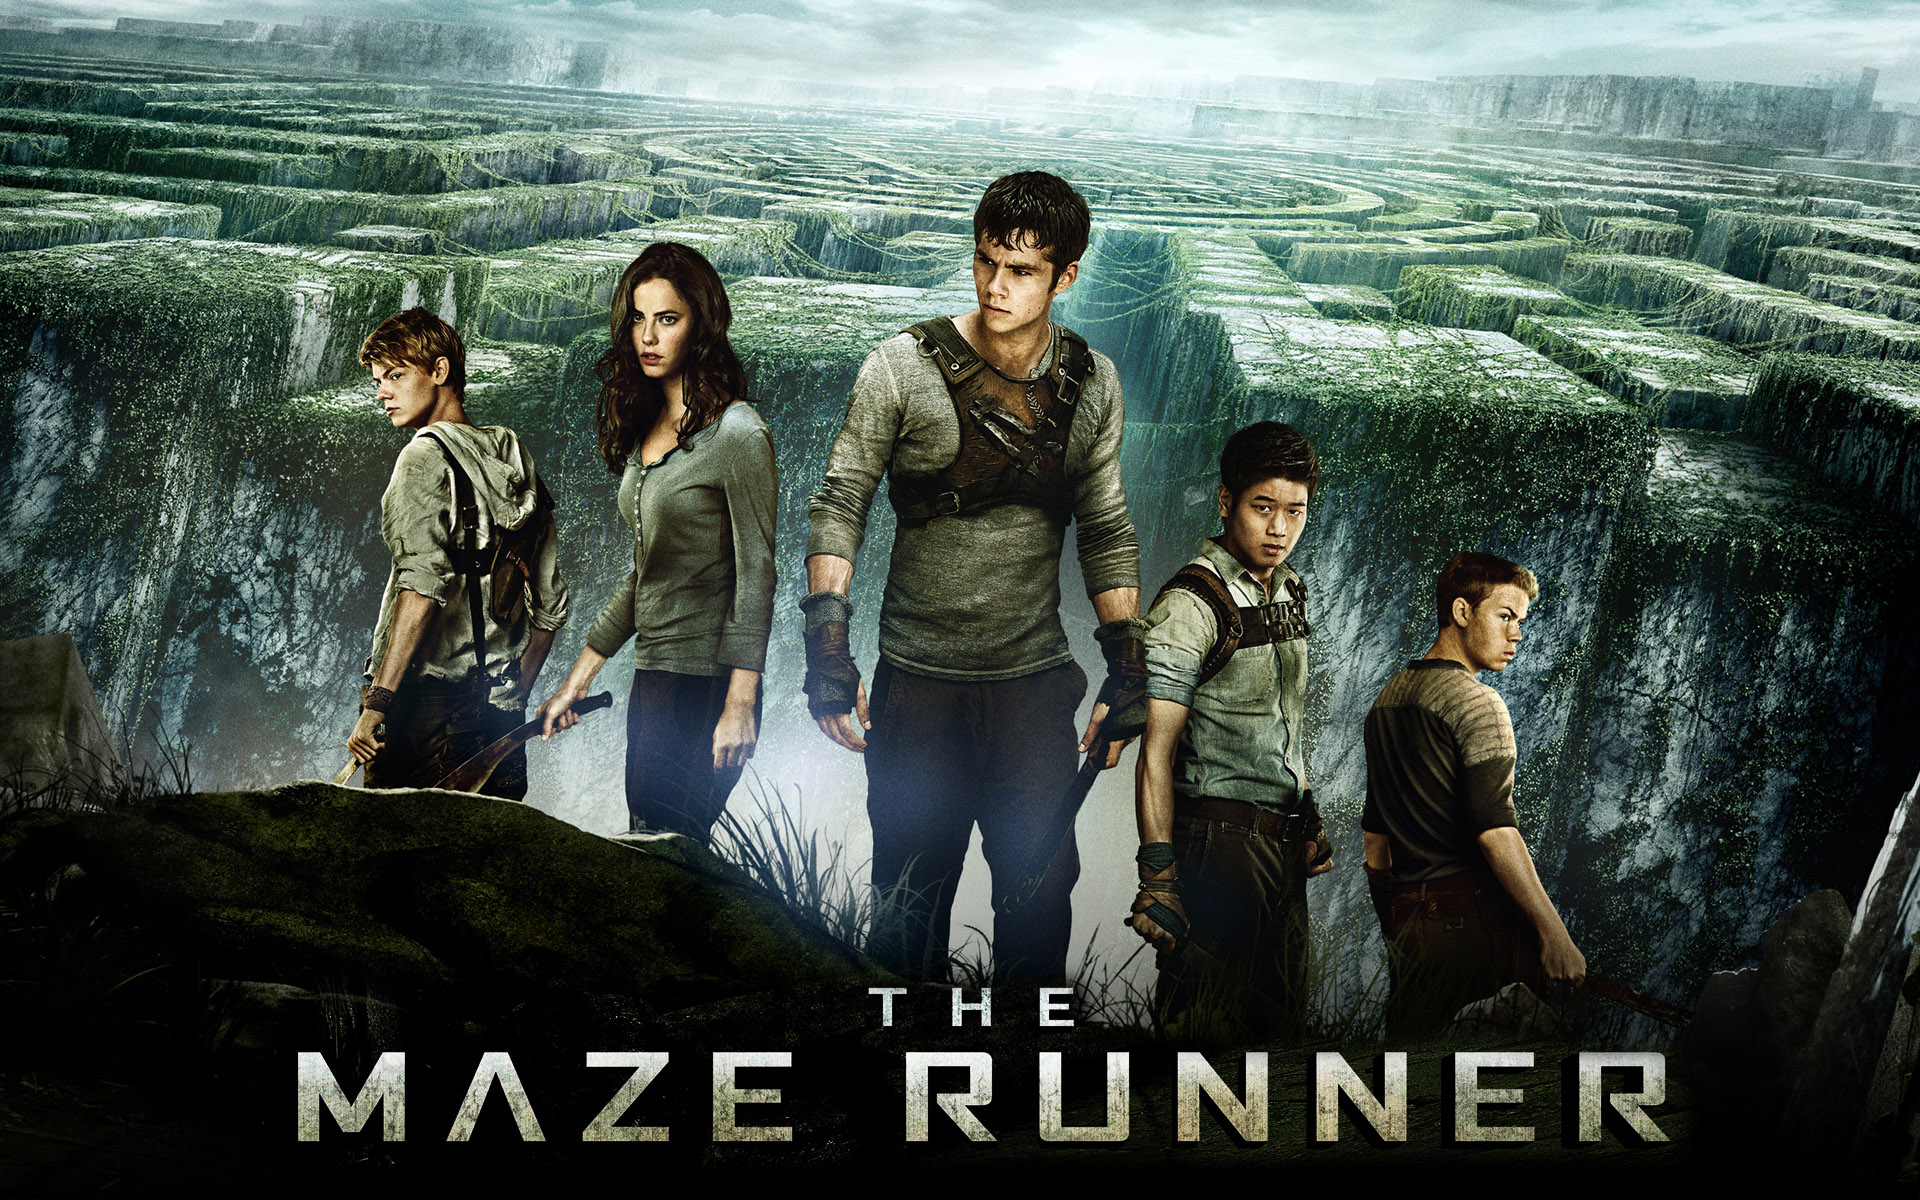 http://img2.wikia.nocookie.net/__cb20150903084425/thehungergames/images/1/1d/The-Maze-Runner-Wallpaper.jpg